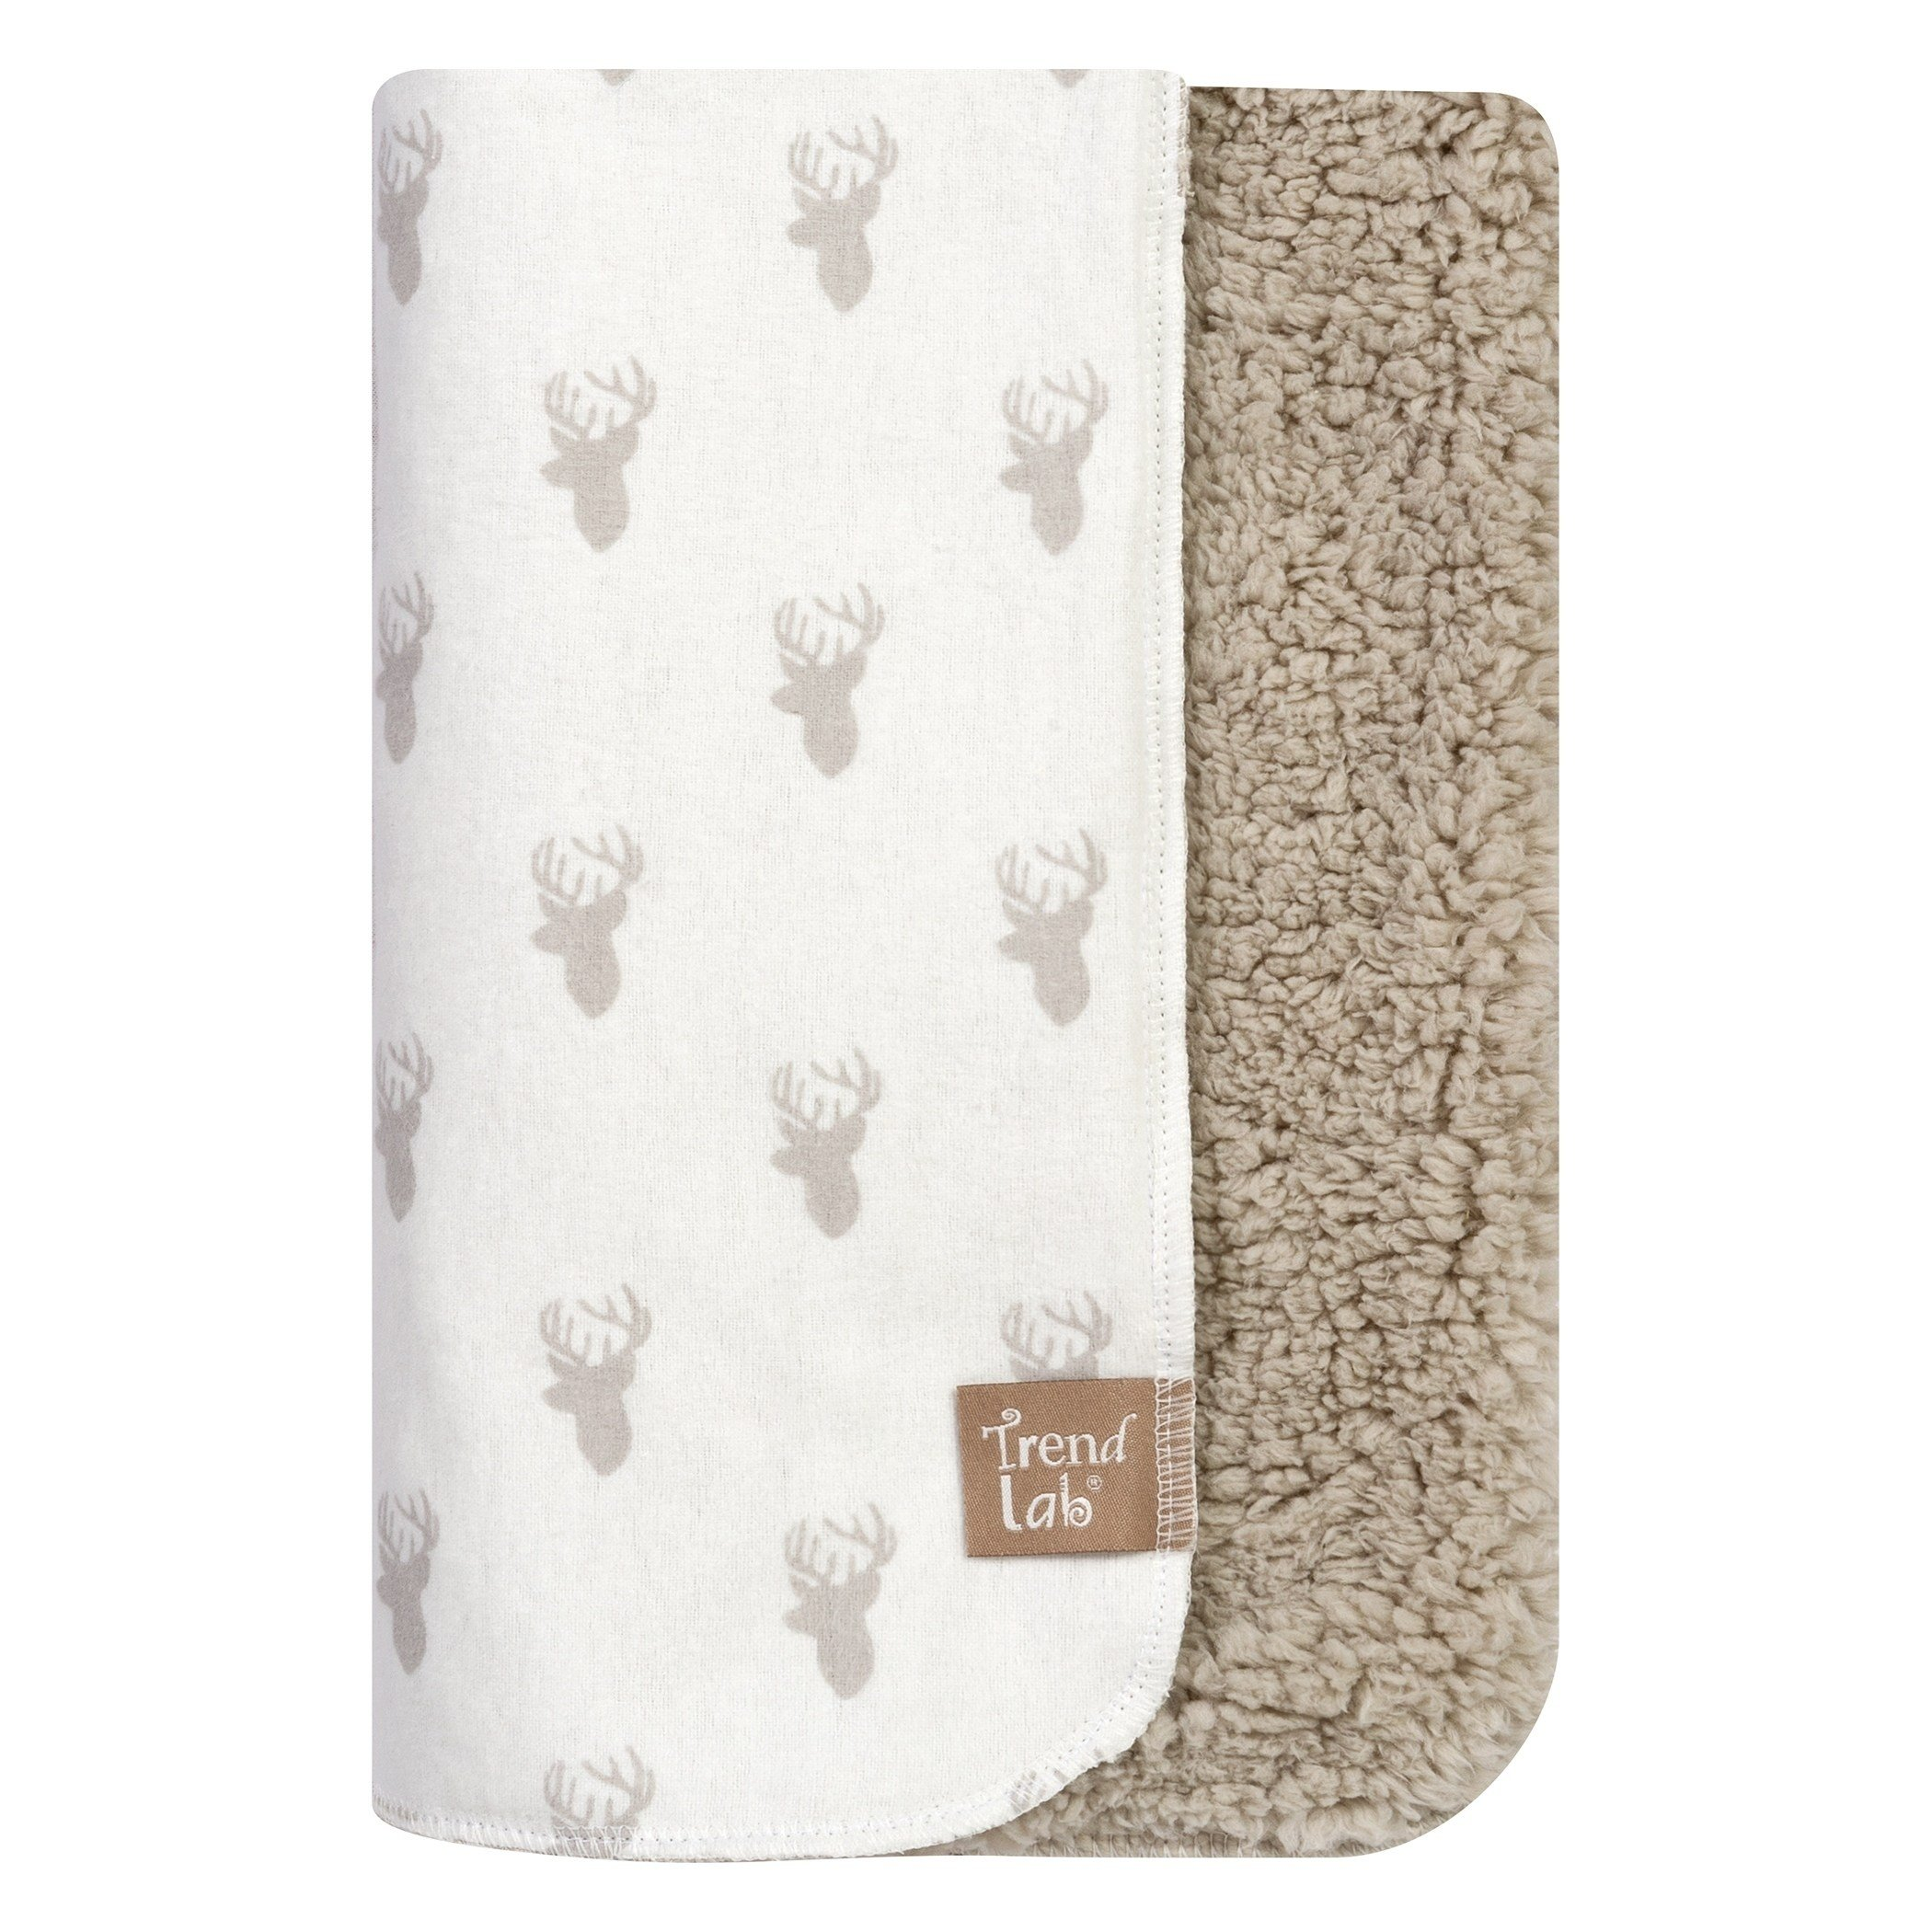 TN 1 Piece Baby Boys White Brown Deer Deluxe Flannel Crib Blanket, Newborn Grey Stag Faux Nursery Bedding, Forest Nature Woods Wildlife Wilderness Animal Cozy Soft Cute Adorable, Cotton